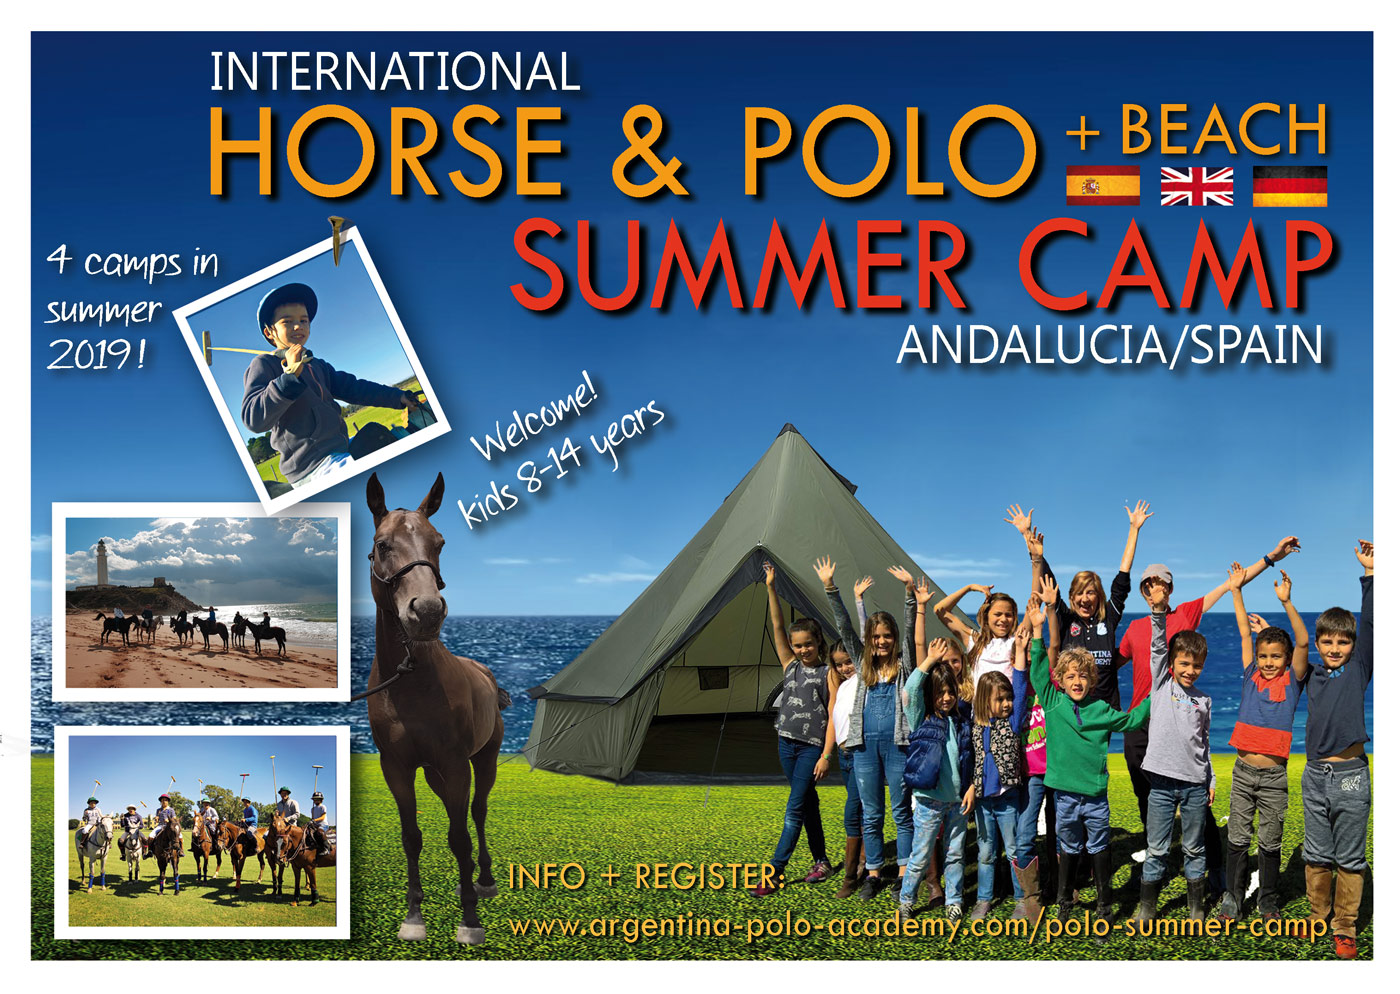 Horse & Polo Summer Camp 2019 Andalucia Spain